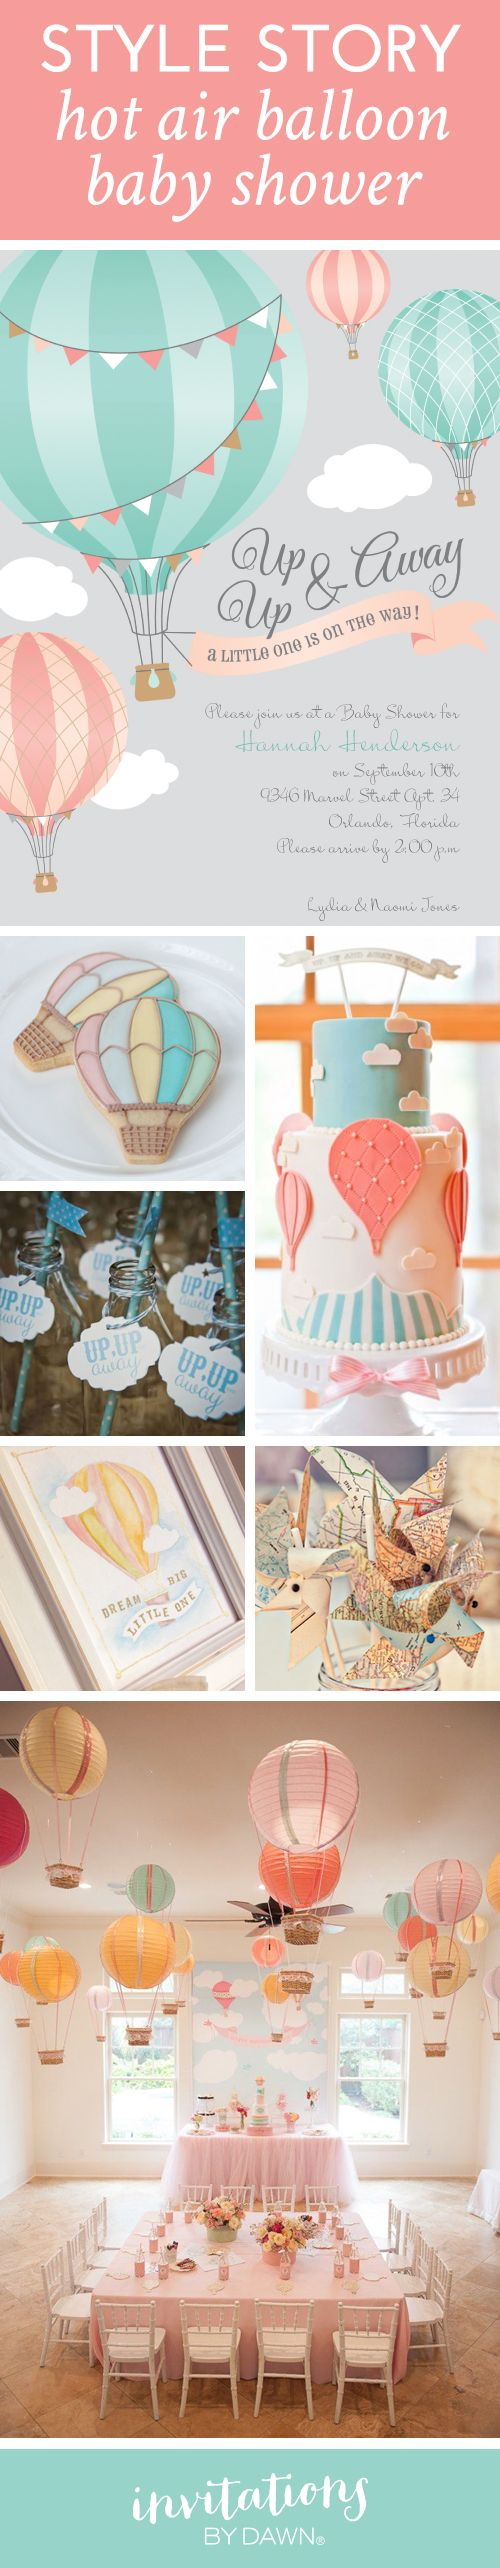 Hot Air Balloon Baby Shower Inspiration. Cutest theme EVER! #babyshower #babyshowertheme #invitationsbydawn